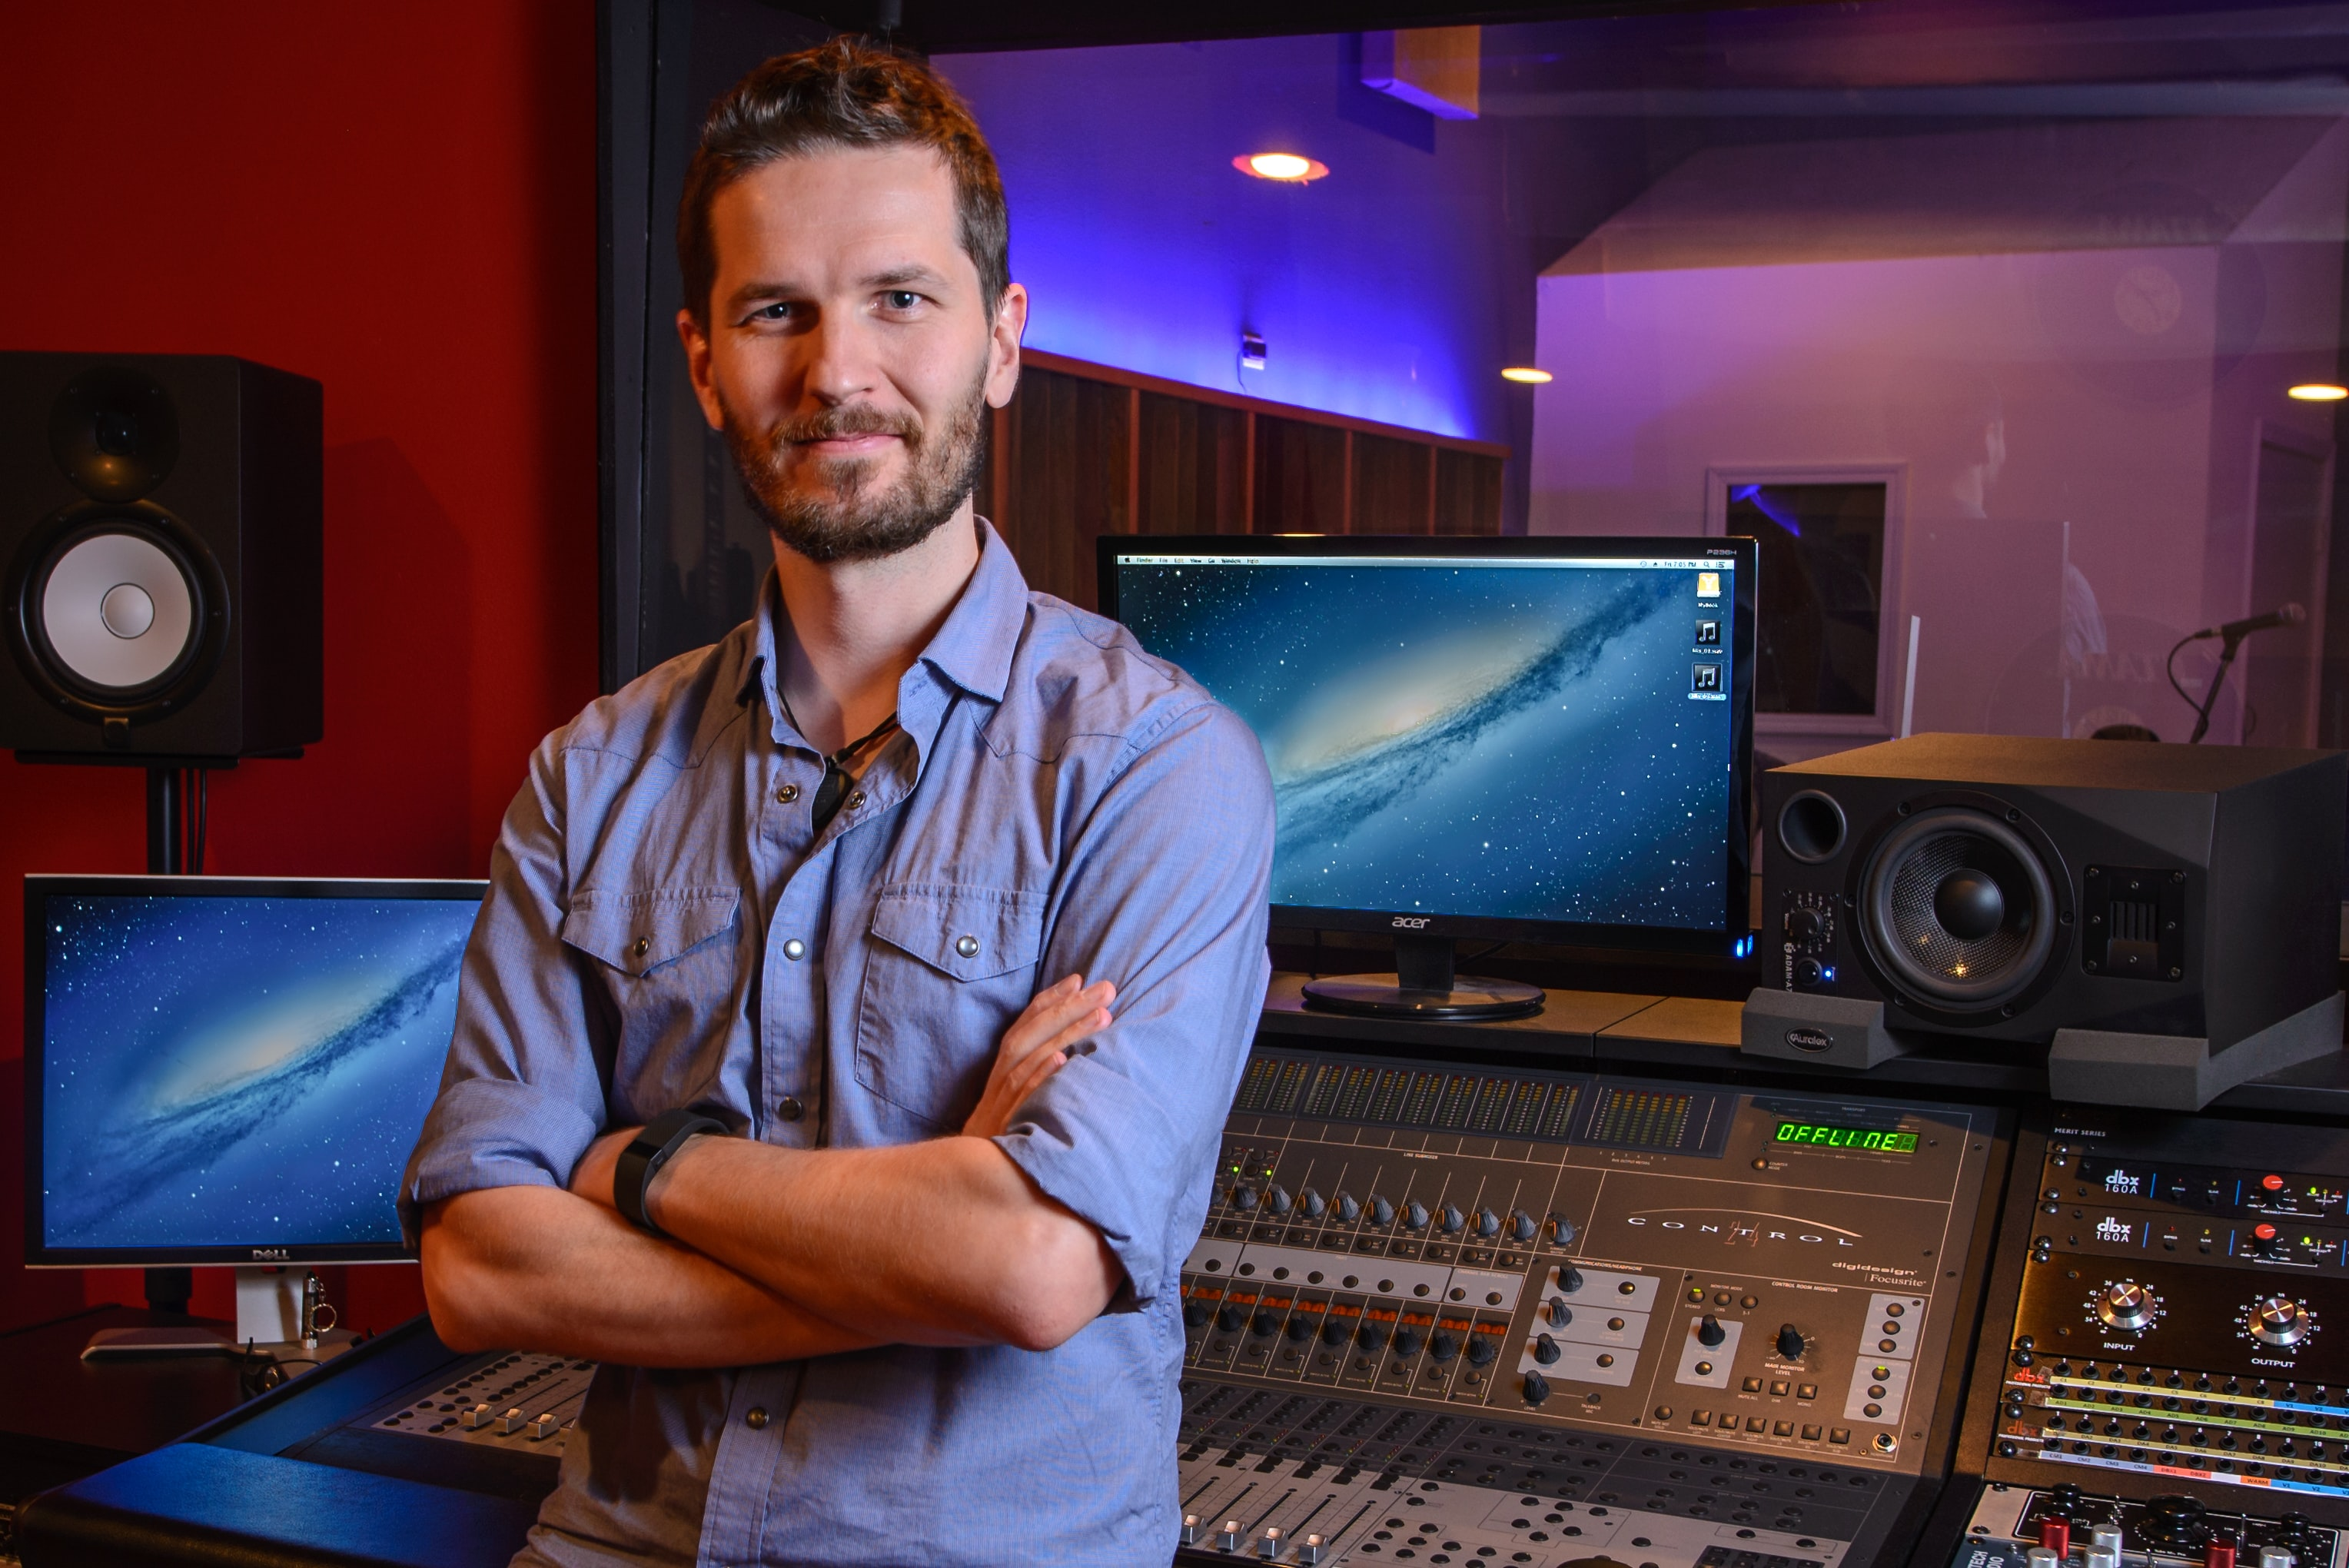 man standing behind audio mixer in studio